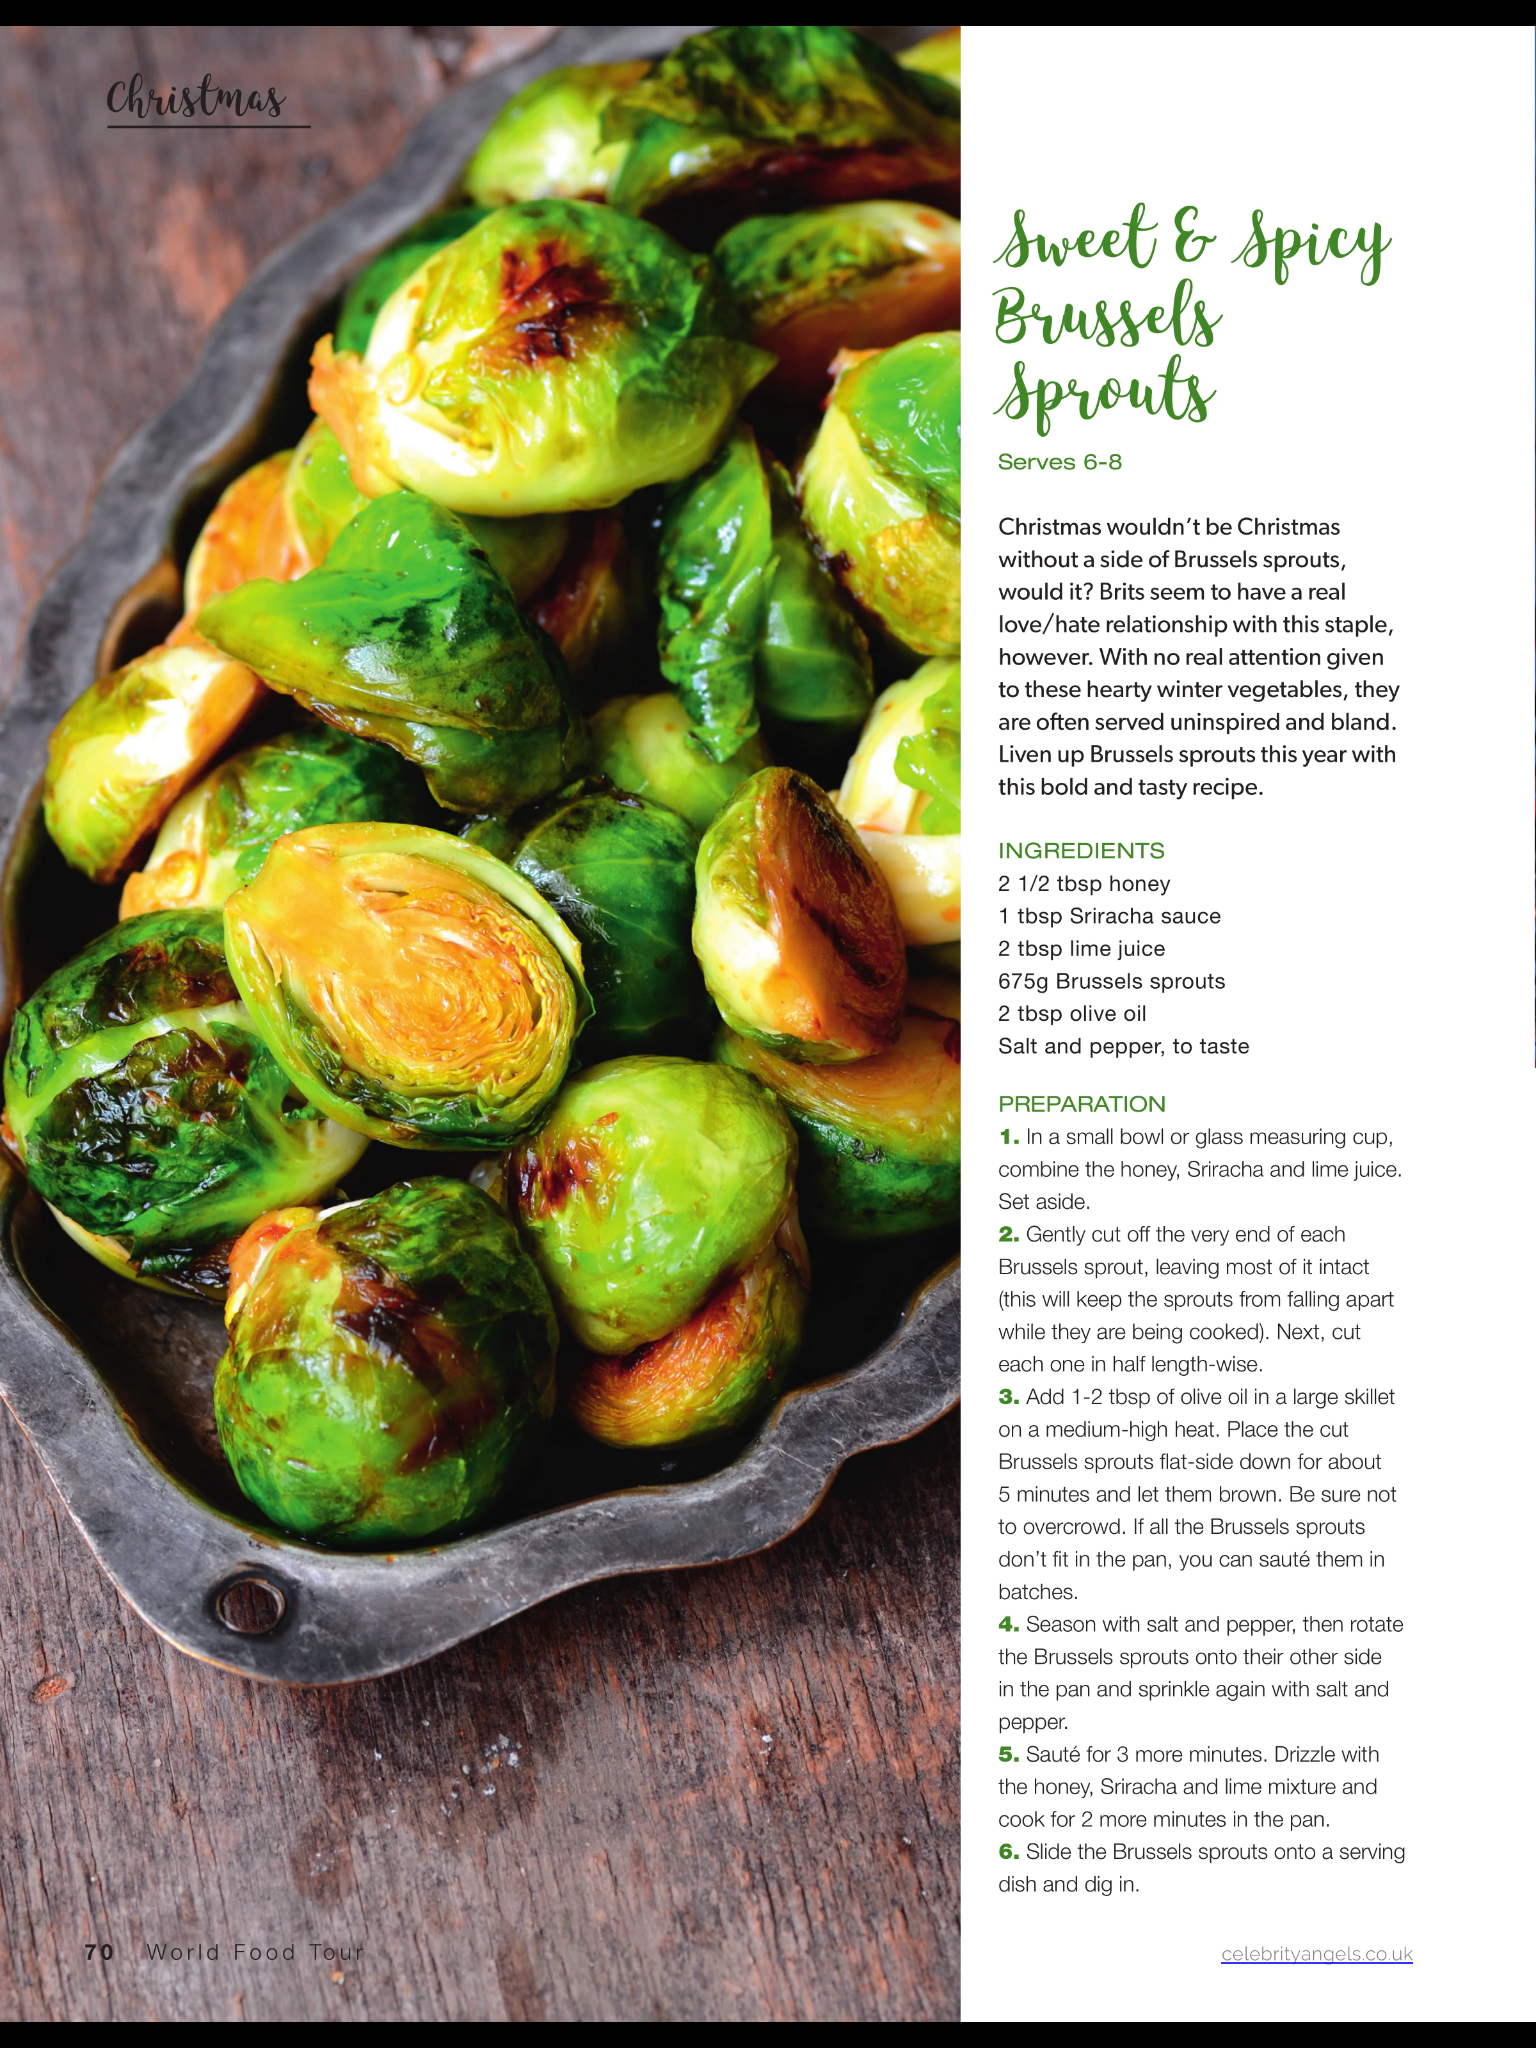 Sweet and spicy Brussels sprouts Tasty ingredients